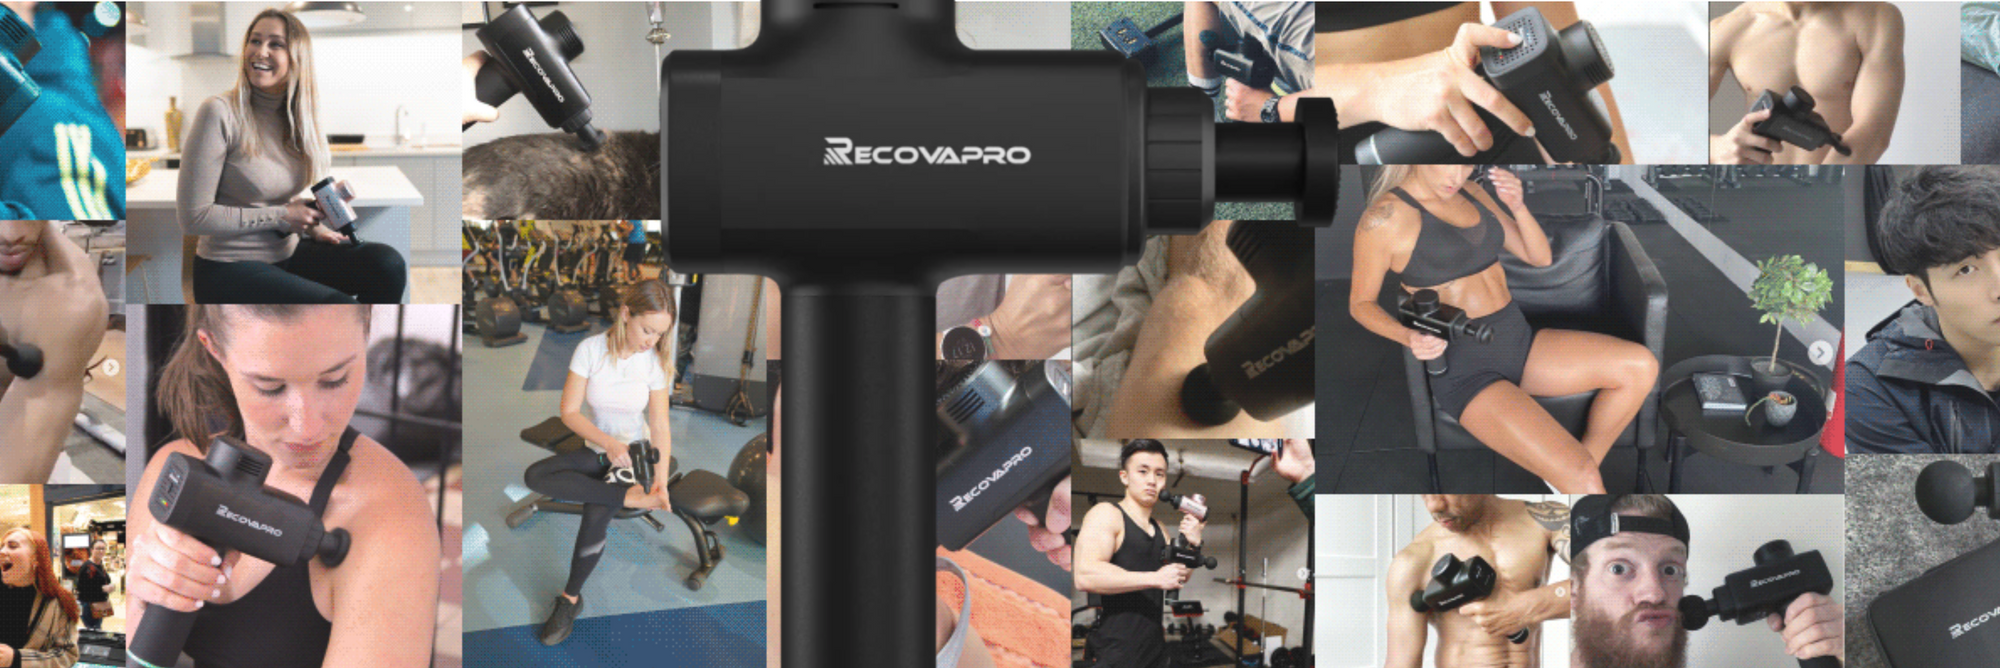 Why Recovapro is the best massage gun?